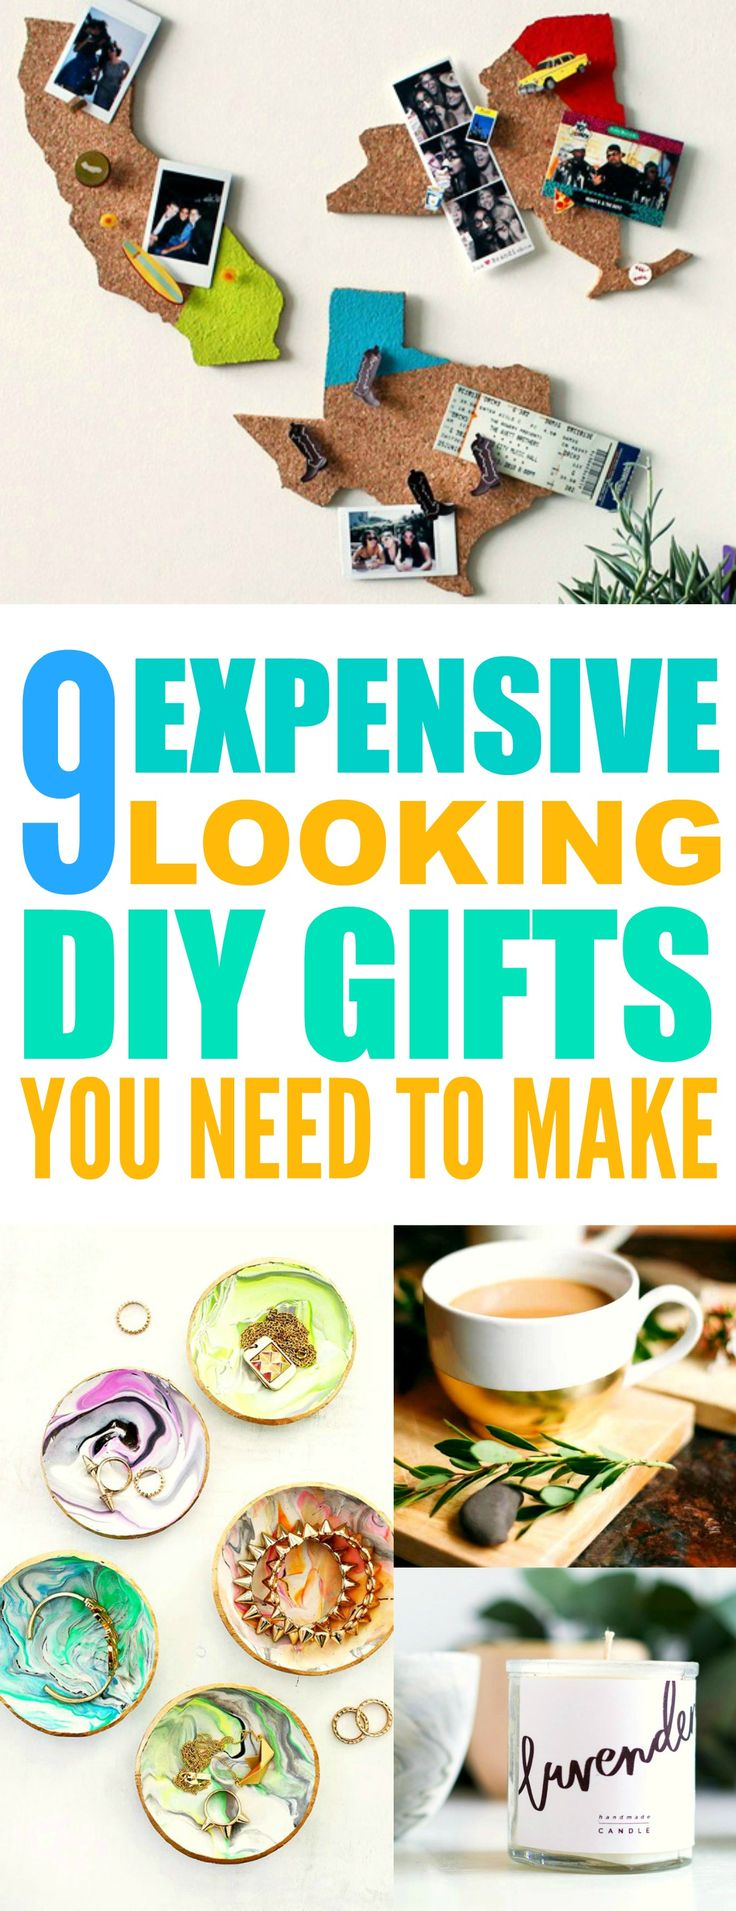 These 9 Expensive Looking DIY gifts are THE BEST! I'm so happy I found these AWESOME ideas! Now I found some great gifts to make for friends. Definitely pinning for later!